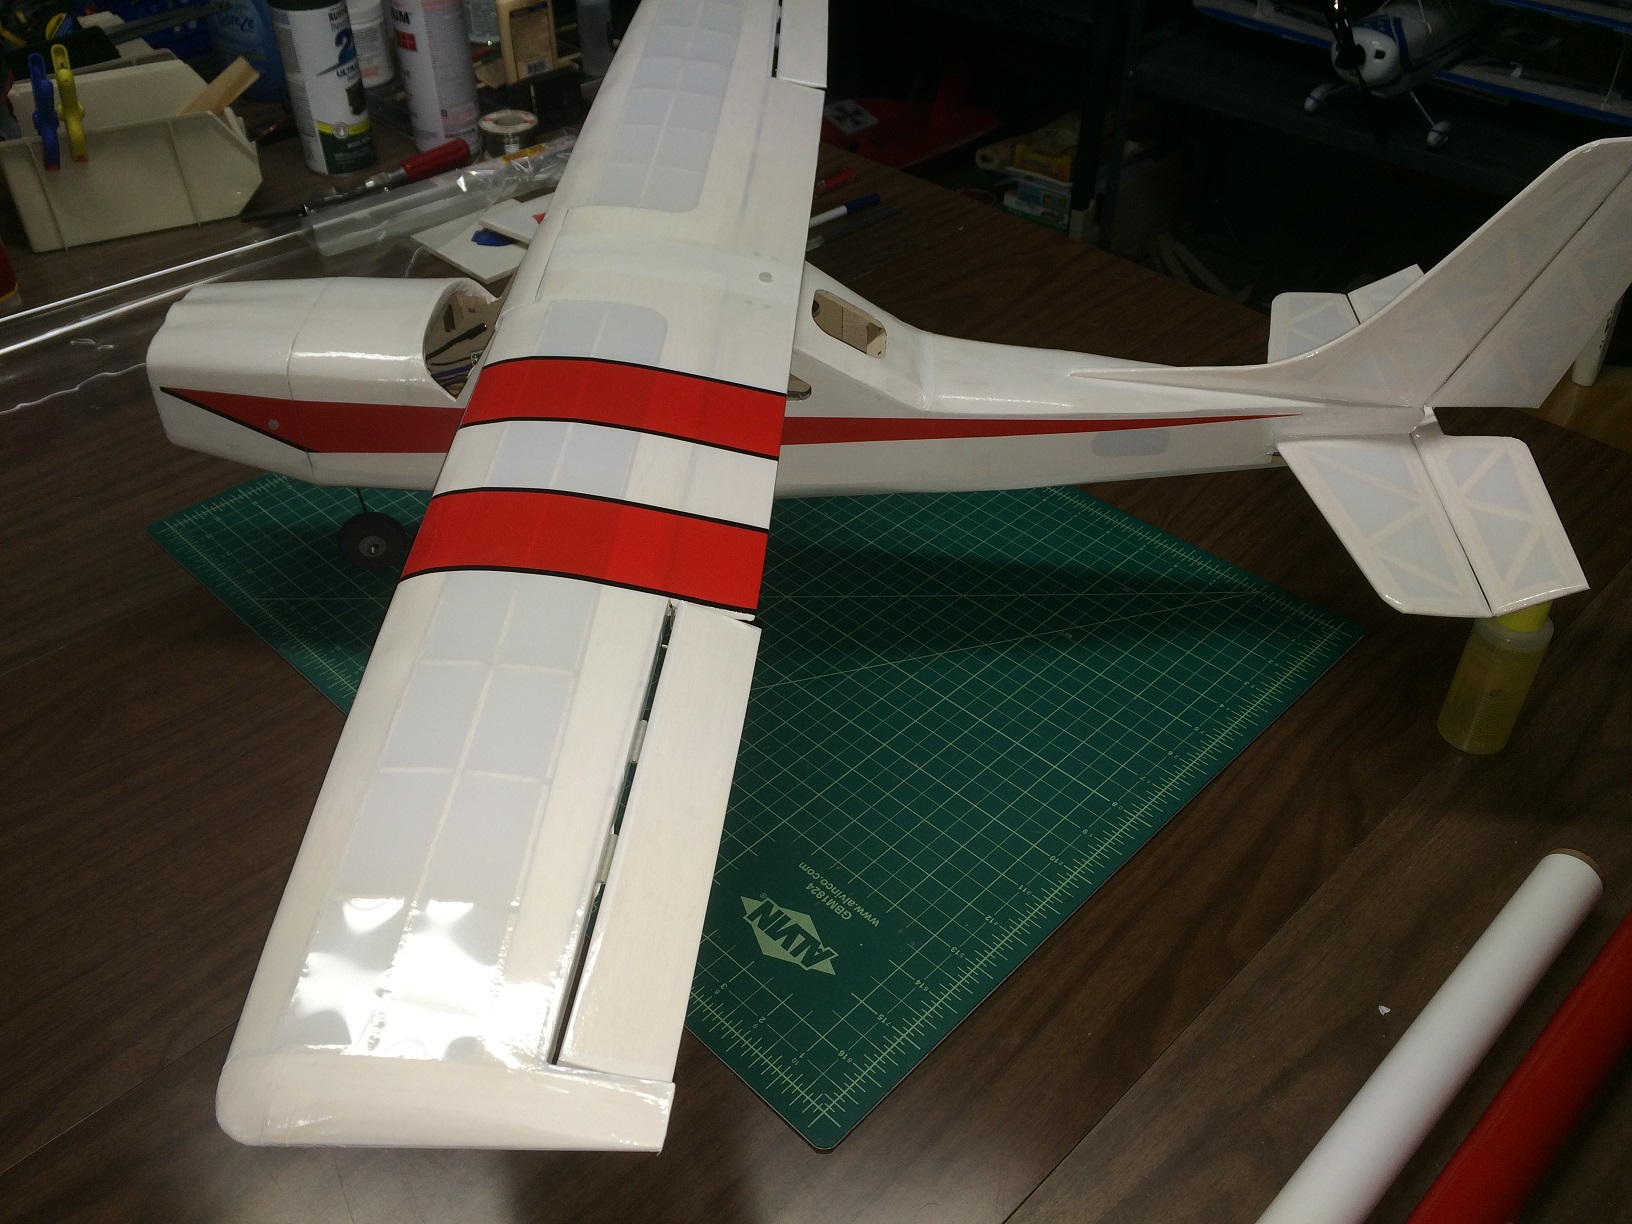 So, You Want to Build Your First Balsa Plane? Start HERE